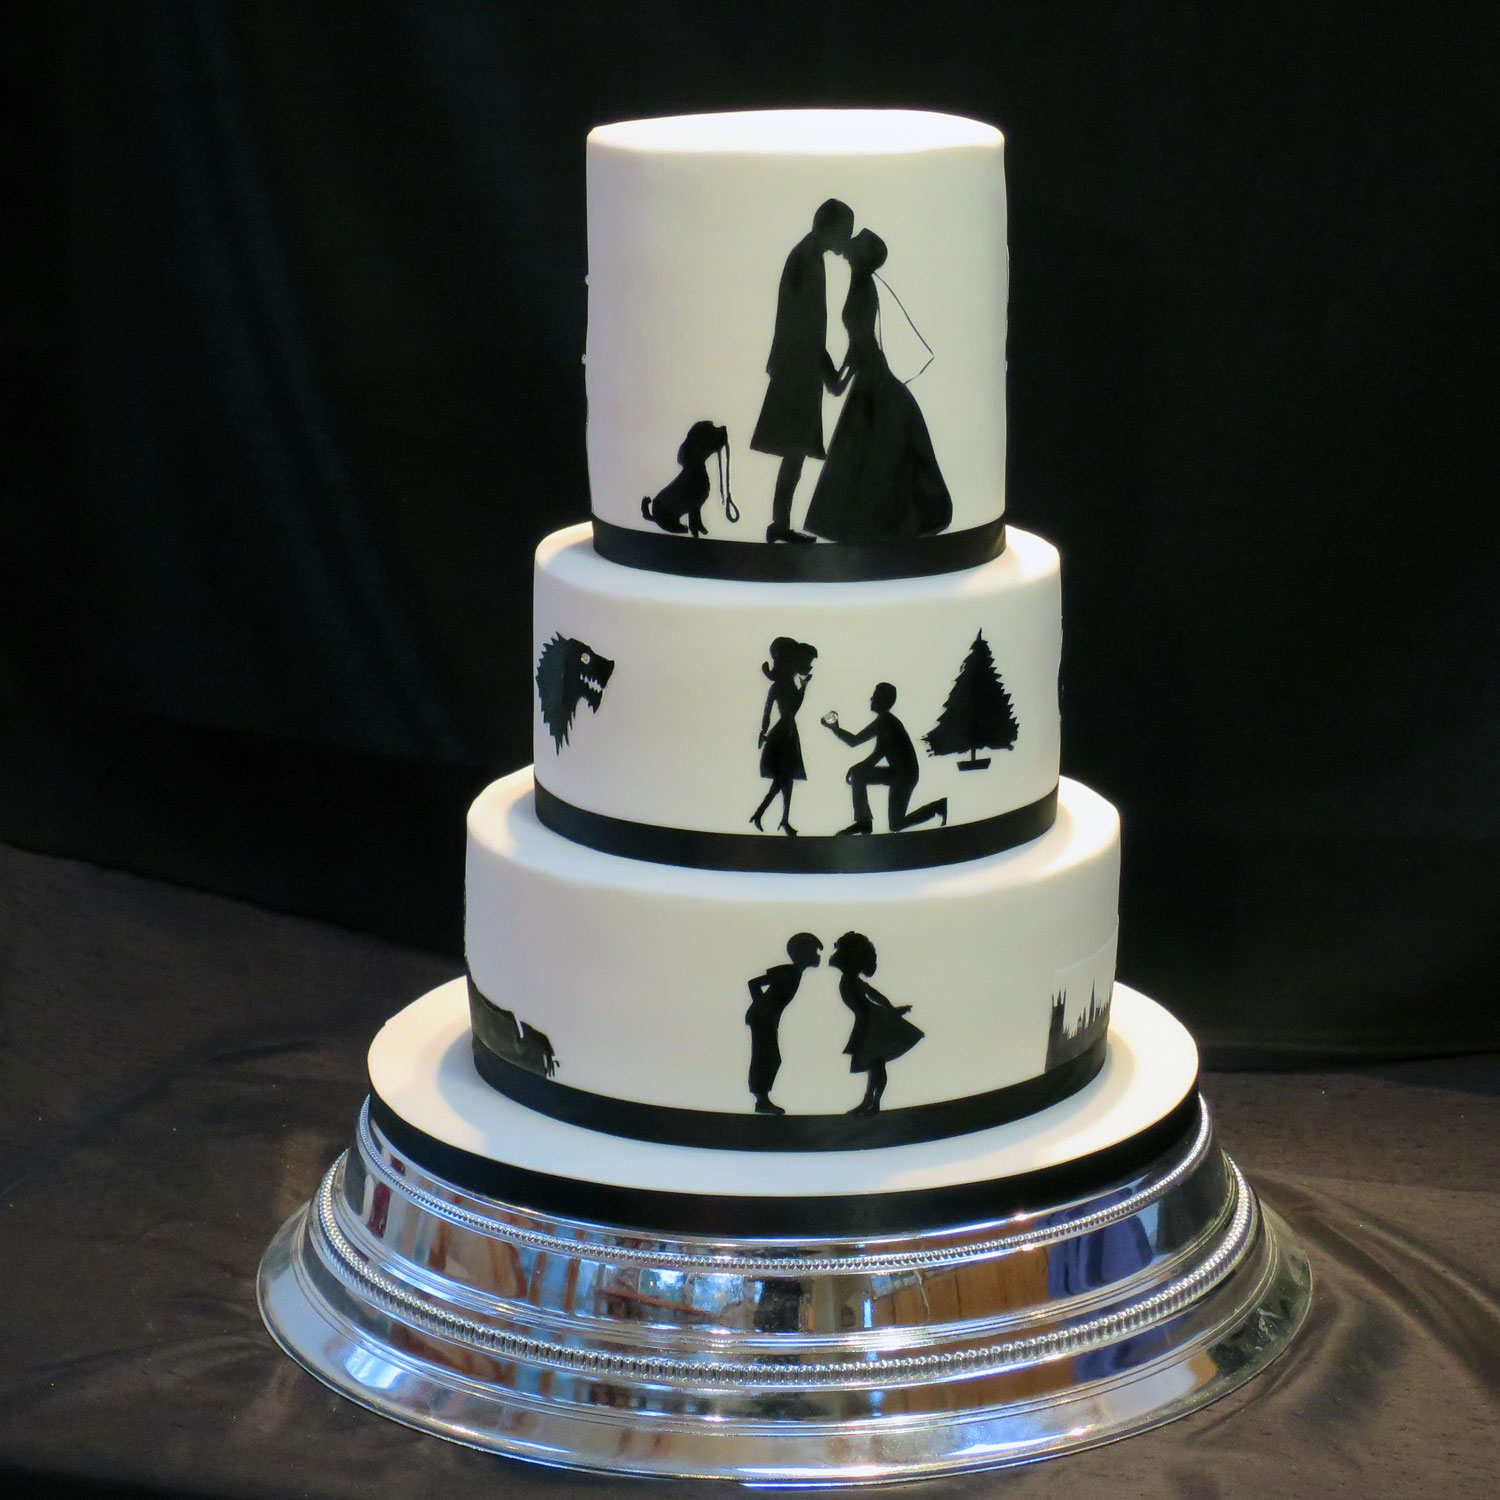 stenciled wedding cake design wedding cake trends for 2018 birmingham event planners 20521